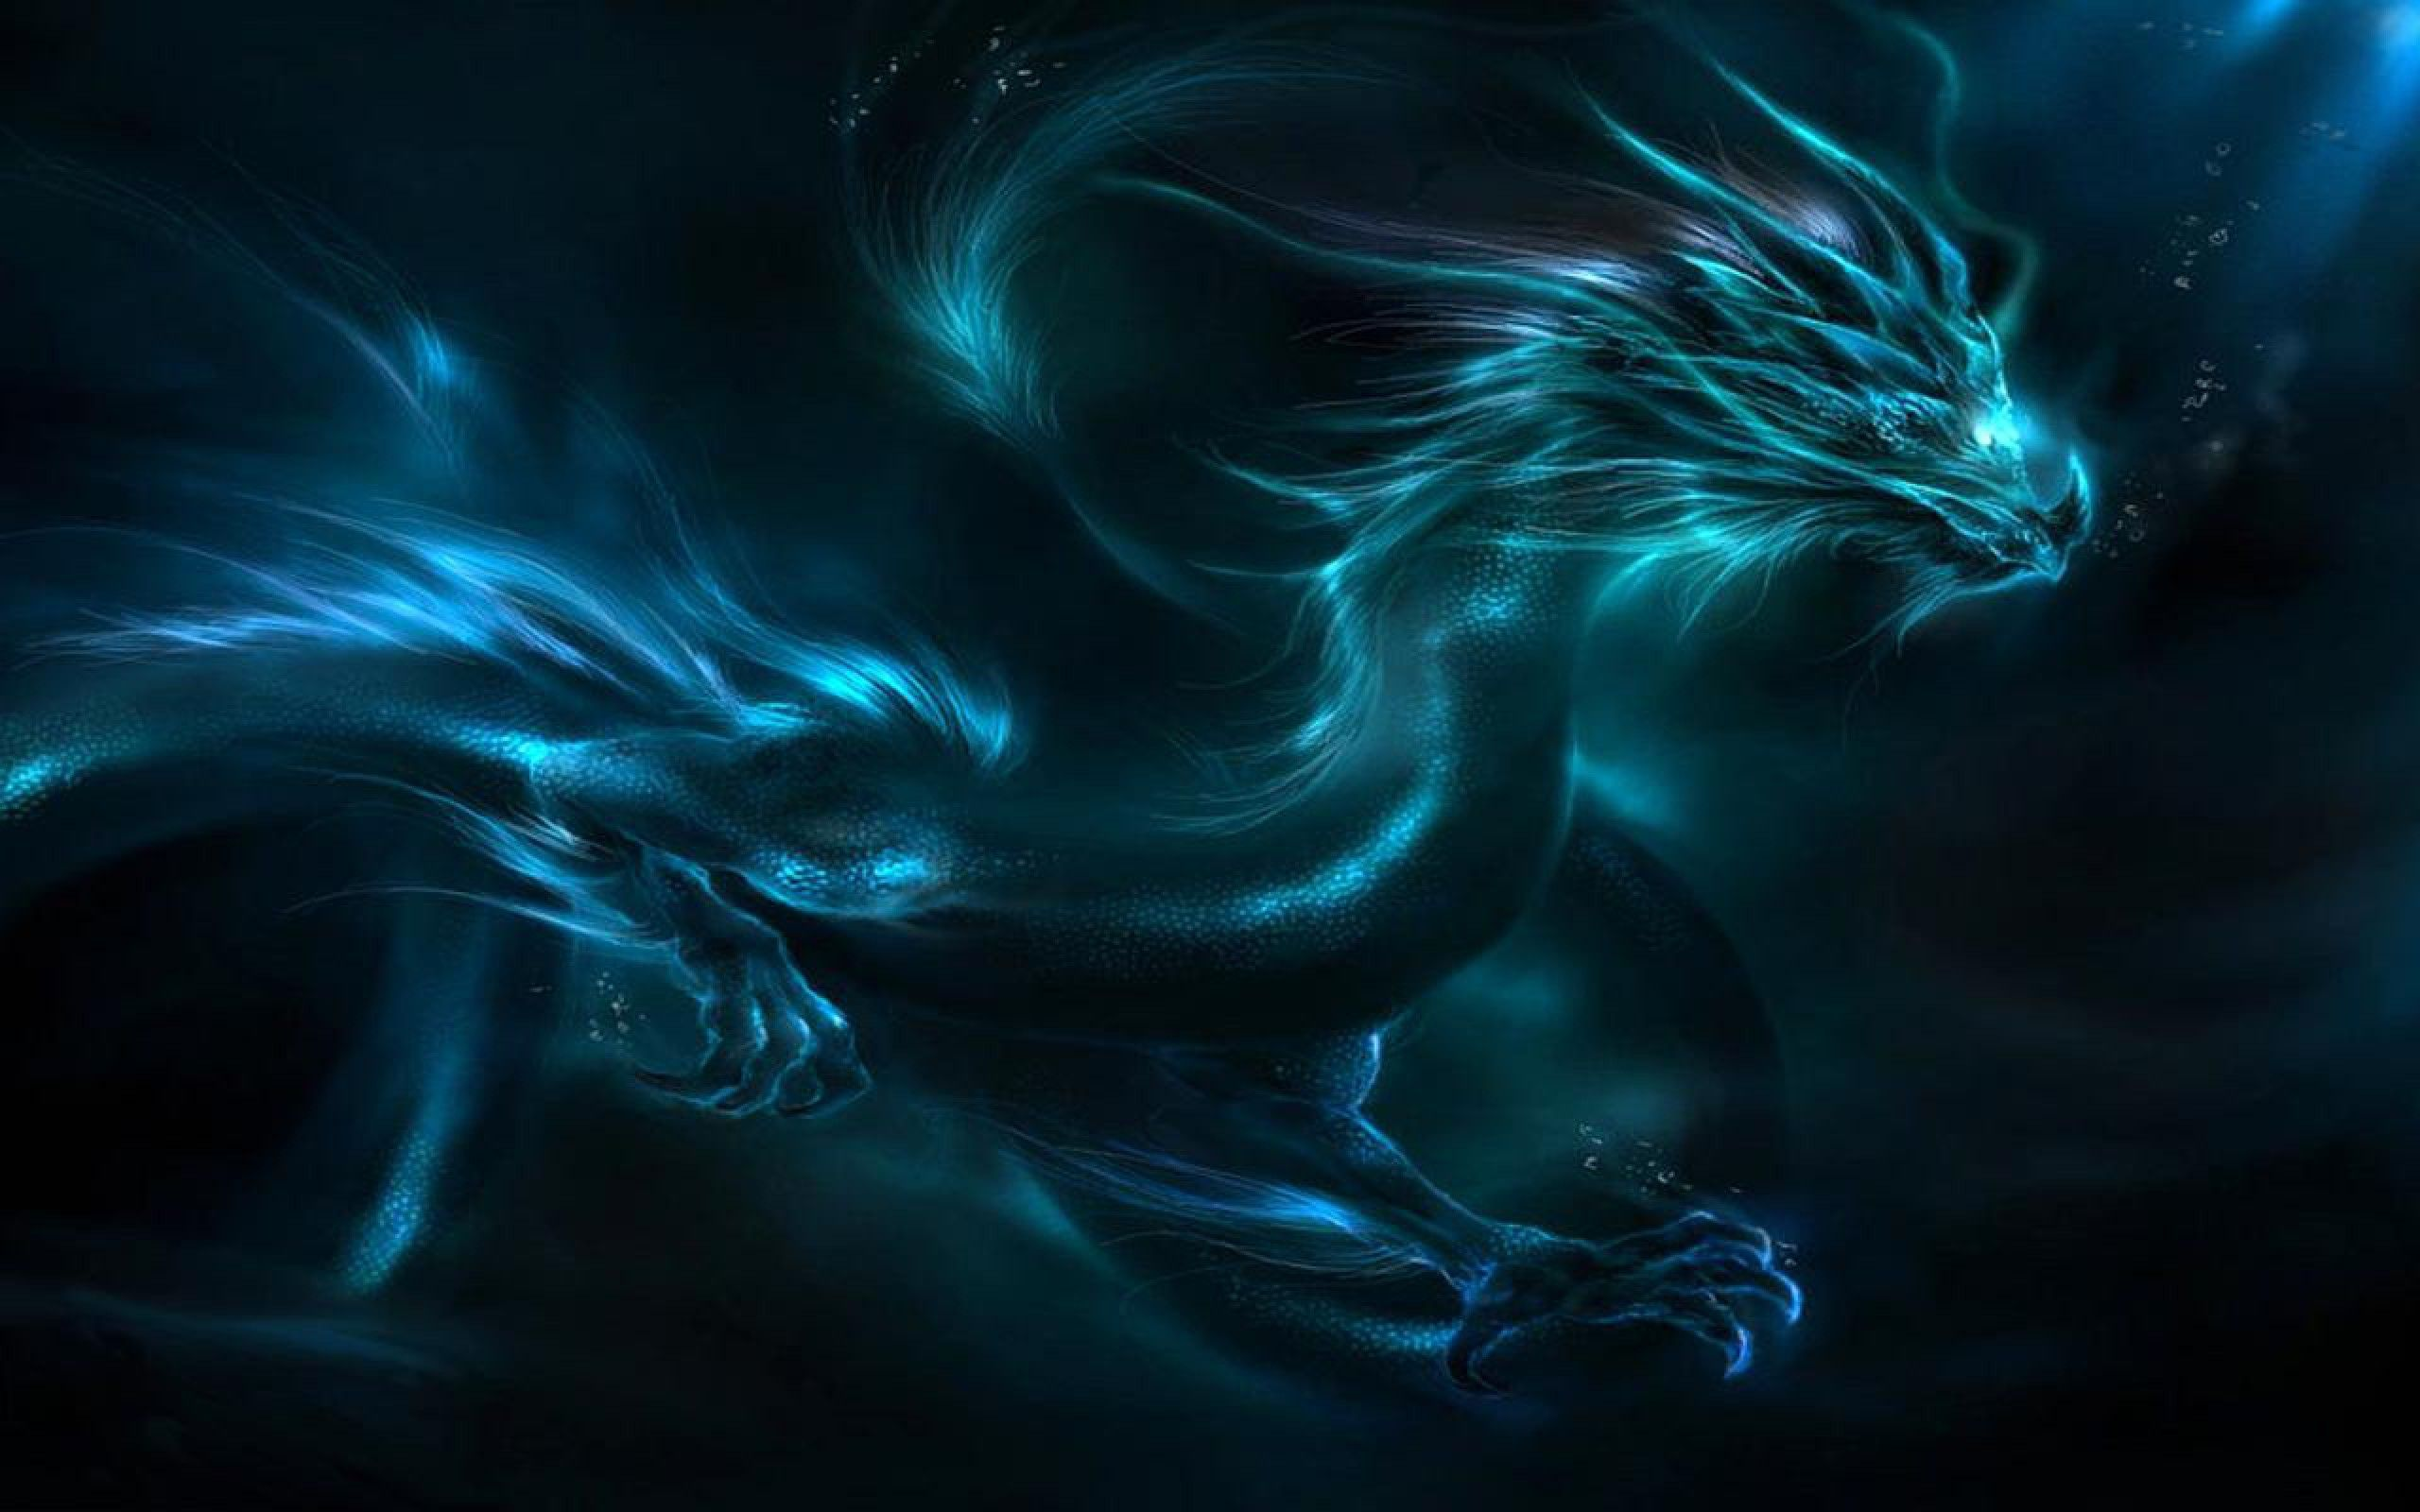 Fantasy Kirin Dragon Wallpapers Hd Wallpaper 2560x1600PX 2560x1600